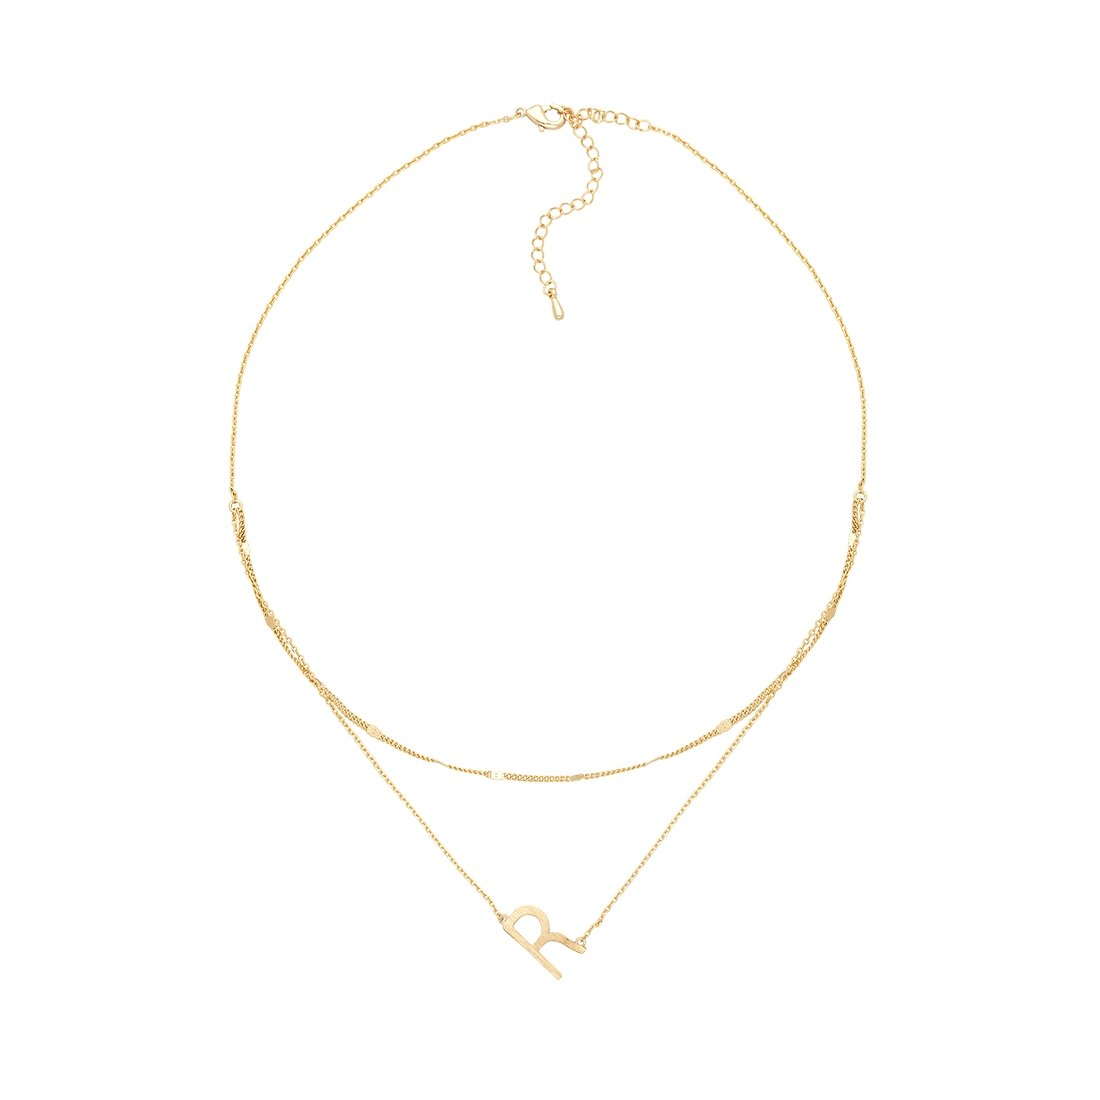 R Gold Double Chain Necklace